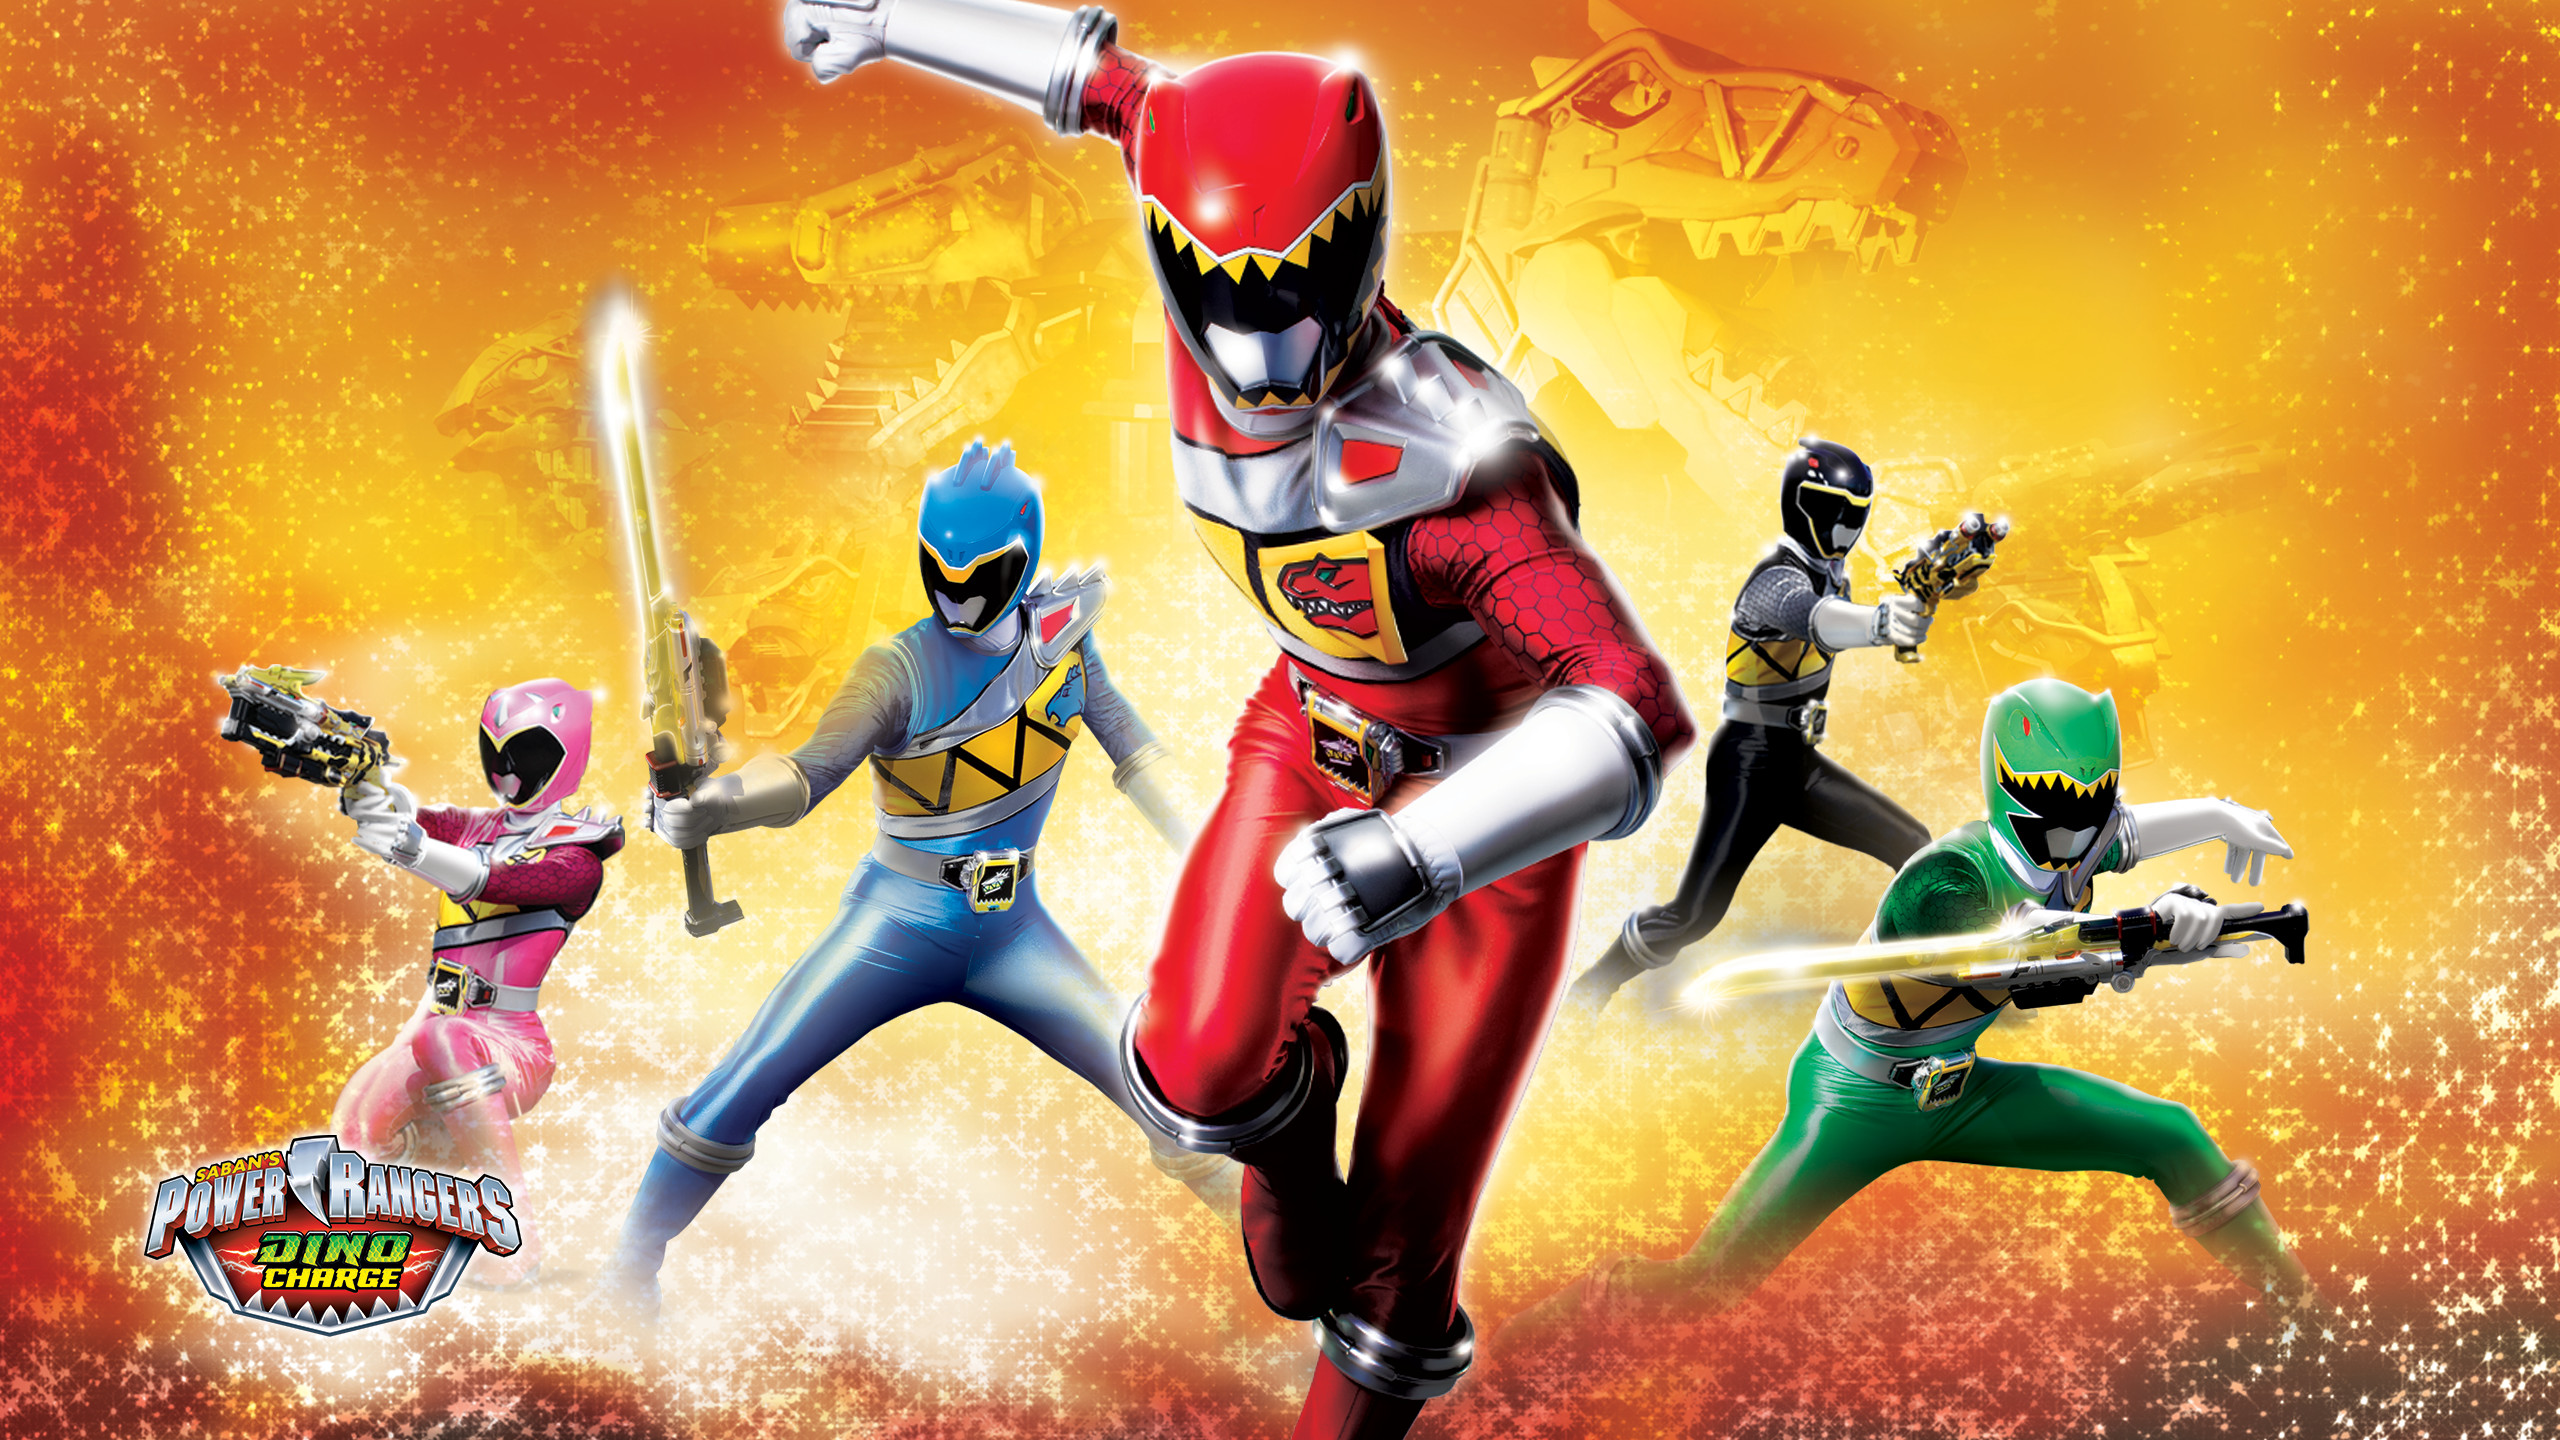 Power Rangers Dino Charge Wallpaper 83 Images